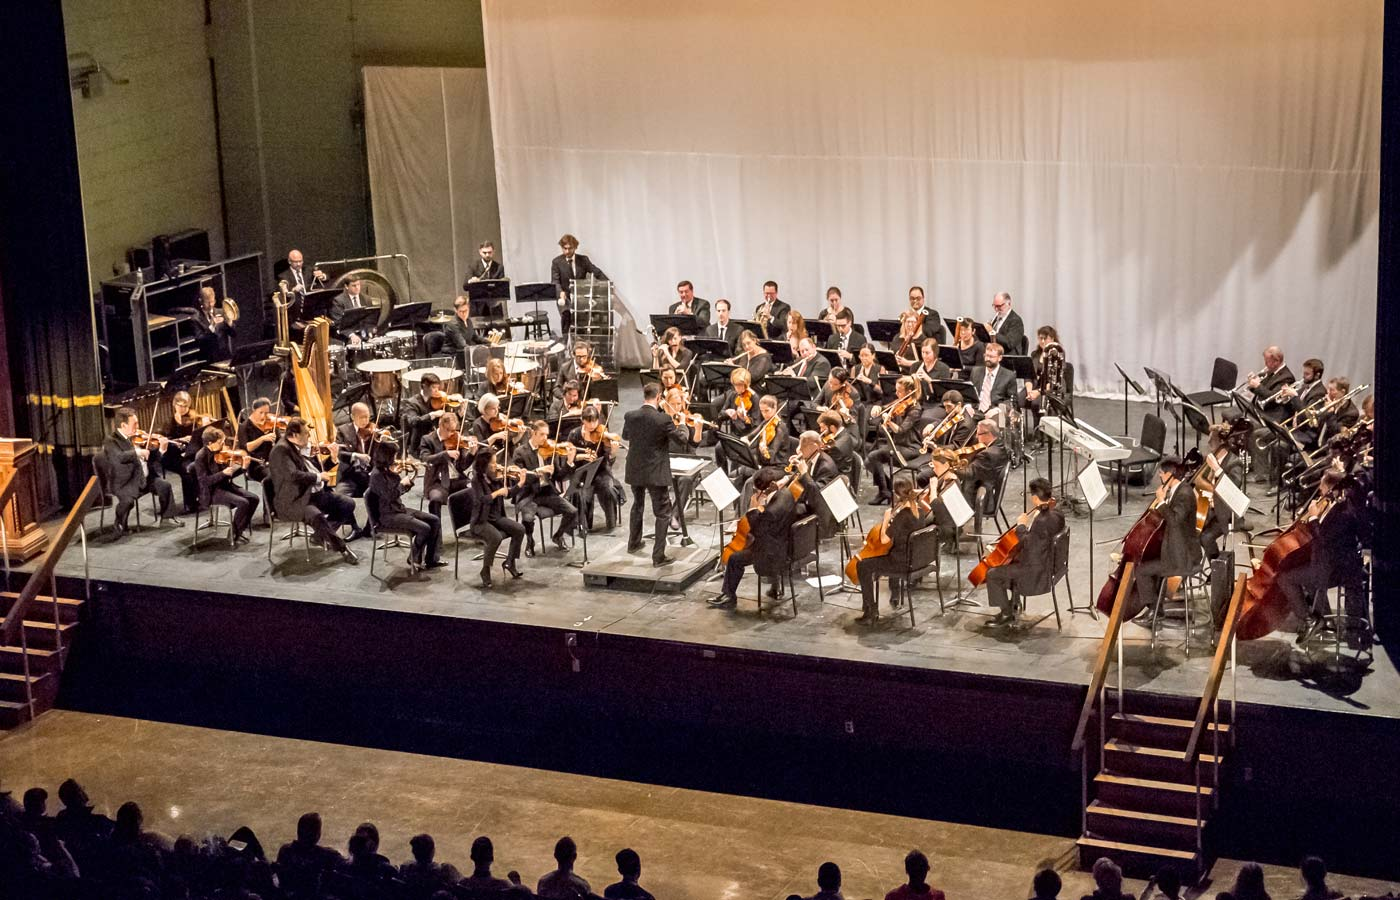 Photo of the Kansas City Symphony with Jason Seber conducting at a Support School Music Community event